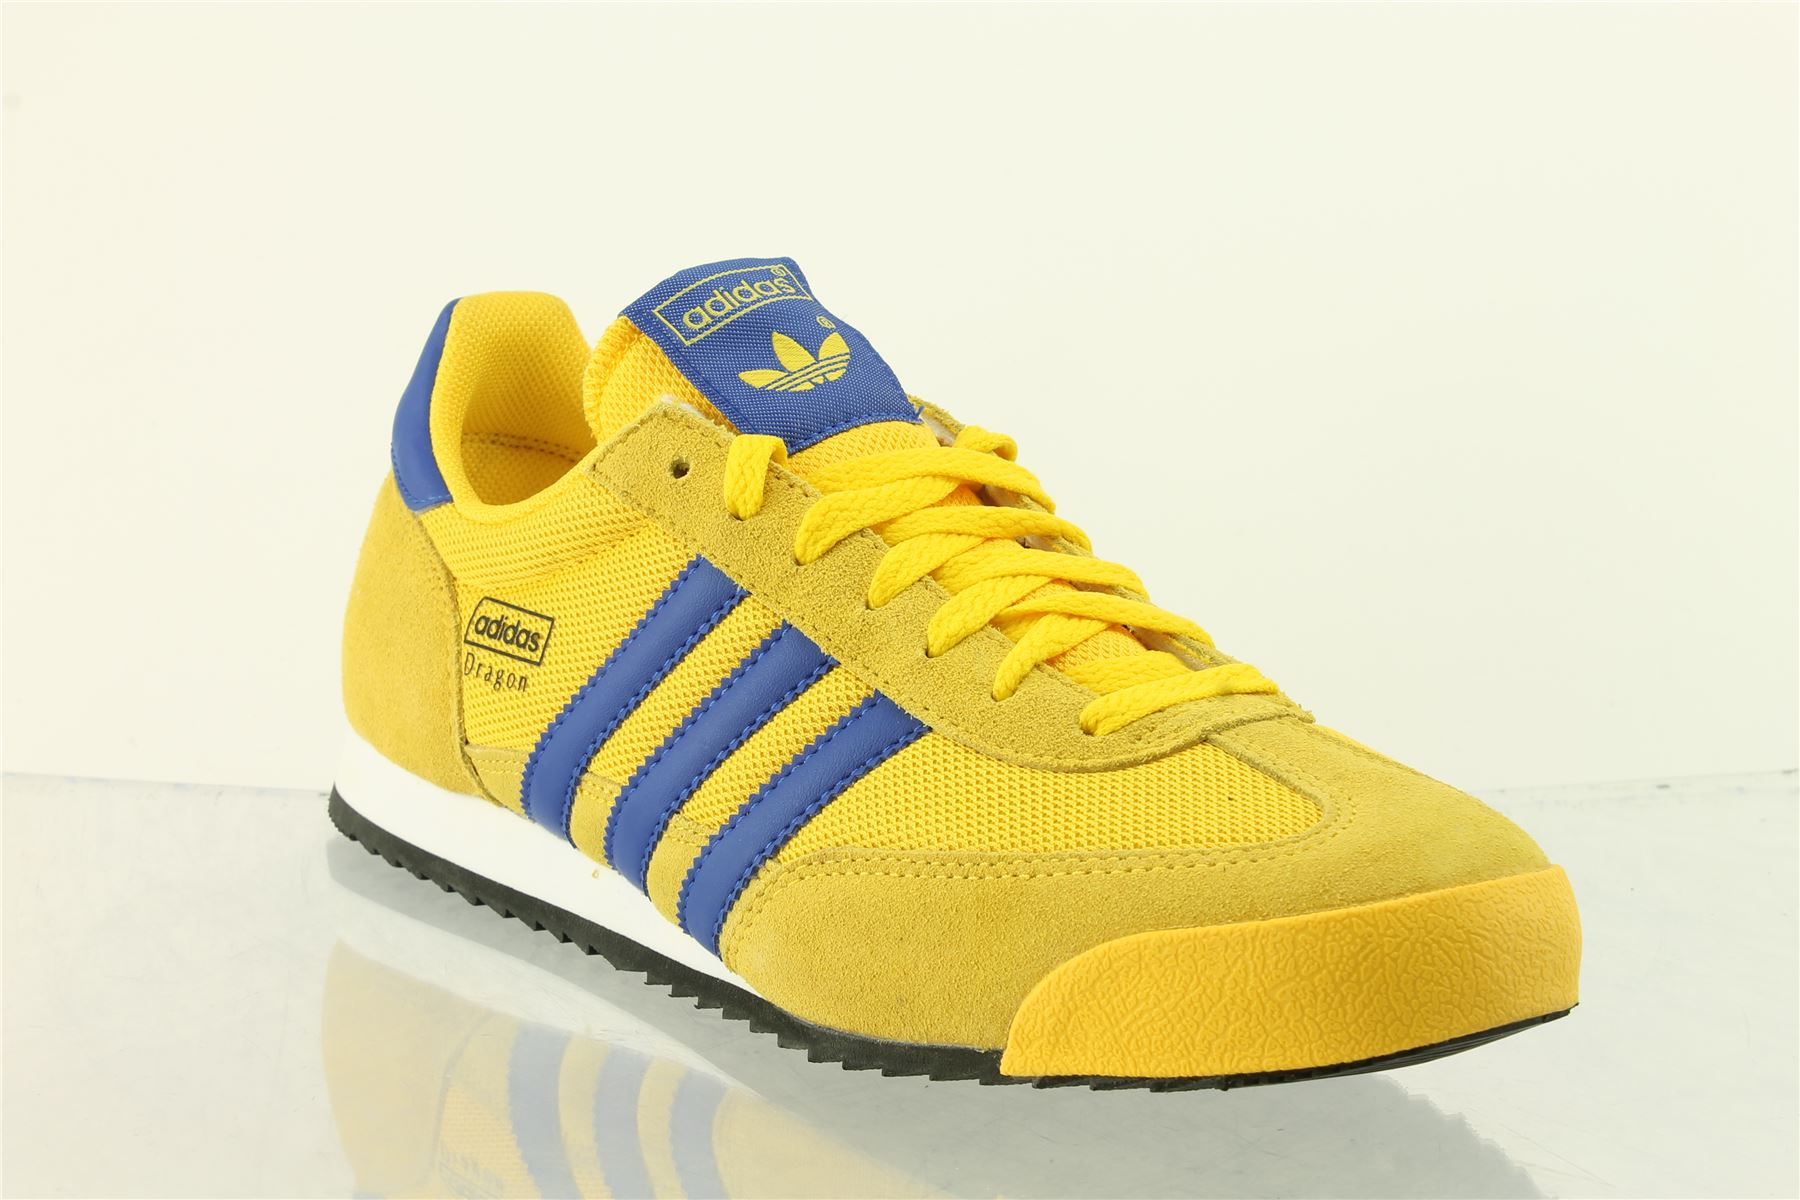 adidas dragon blue and yellow